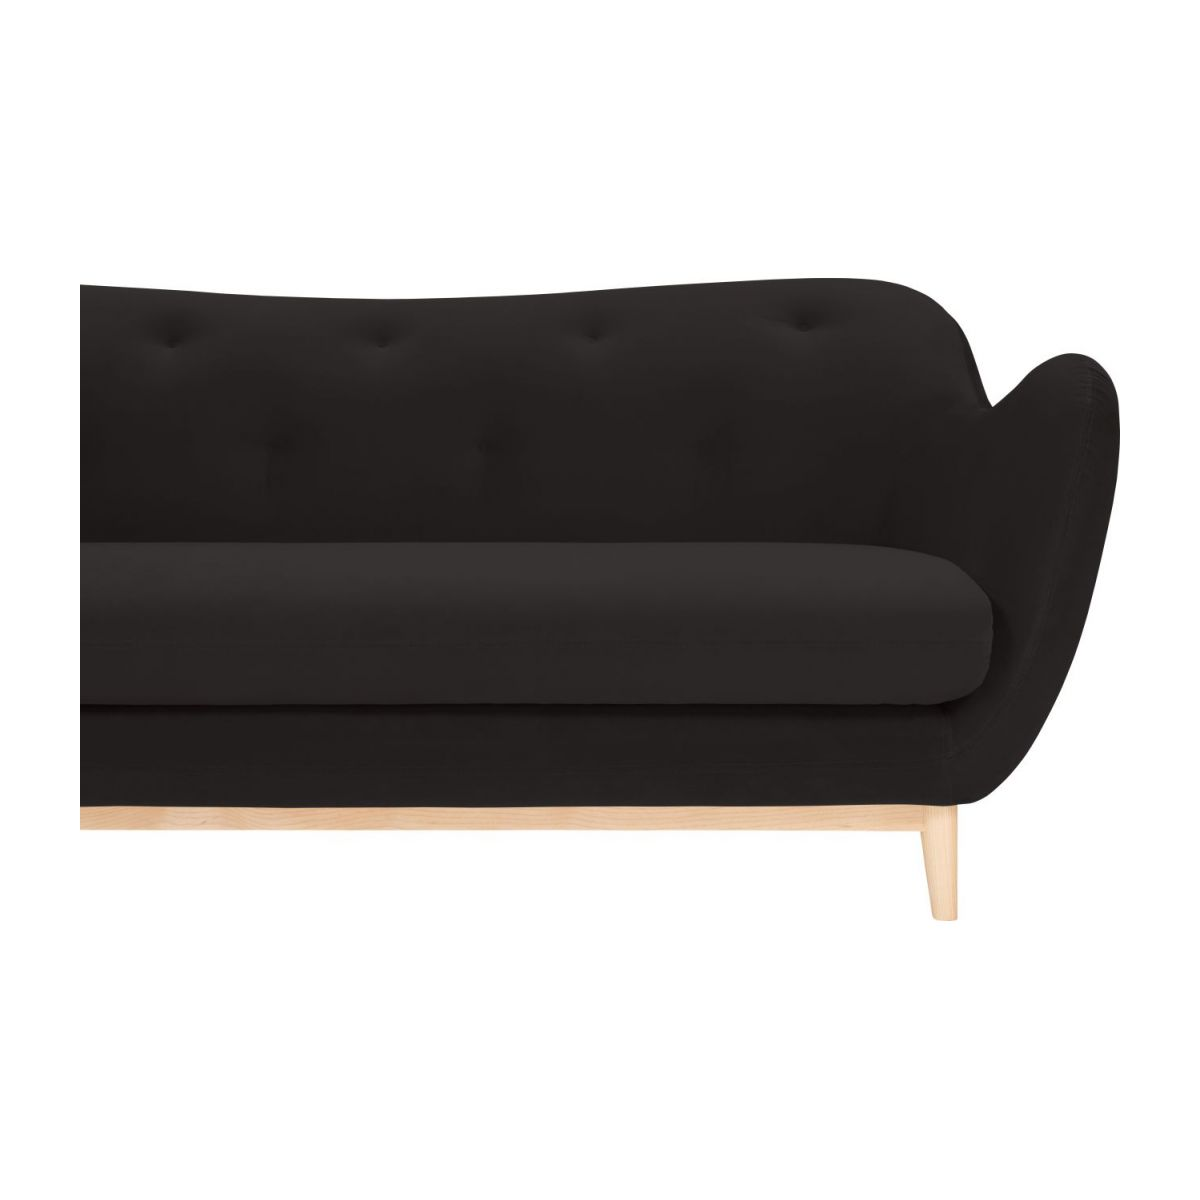 2-seat sofa made of velvet, grey n°6